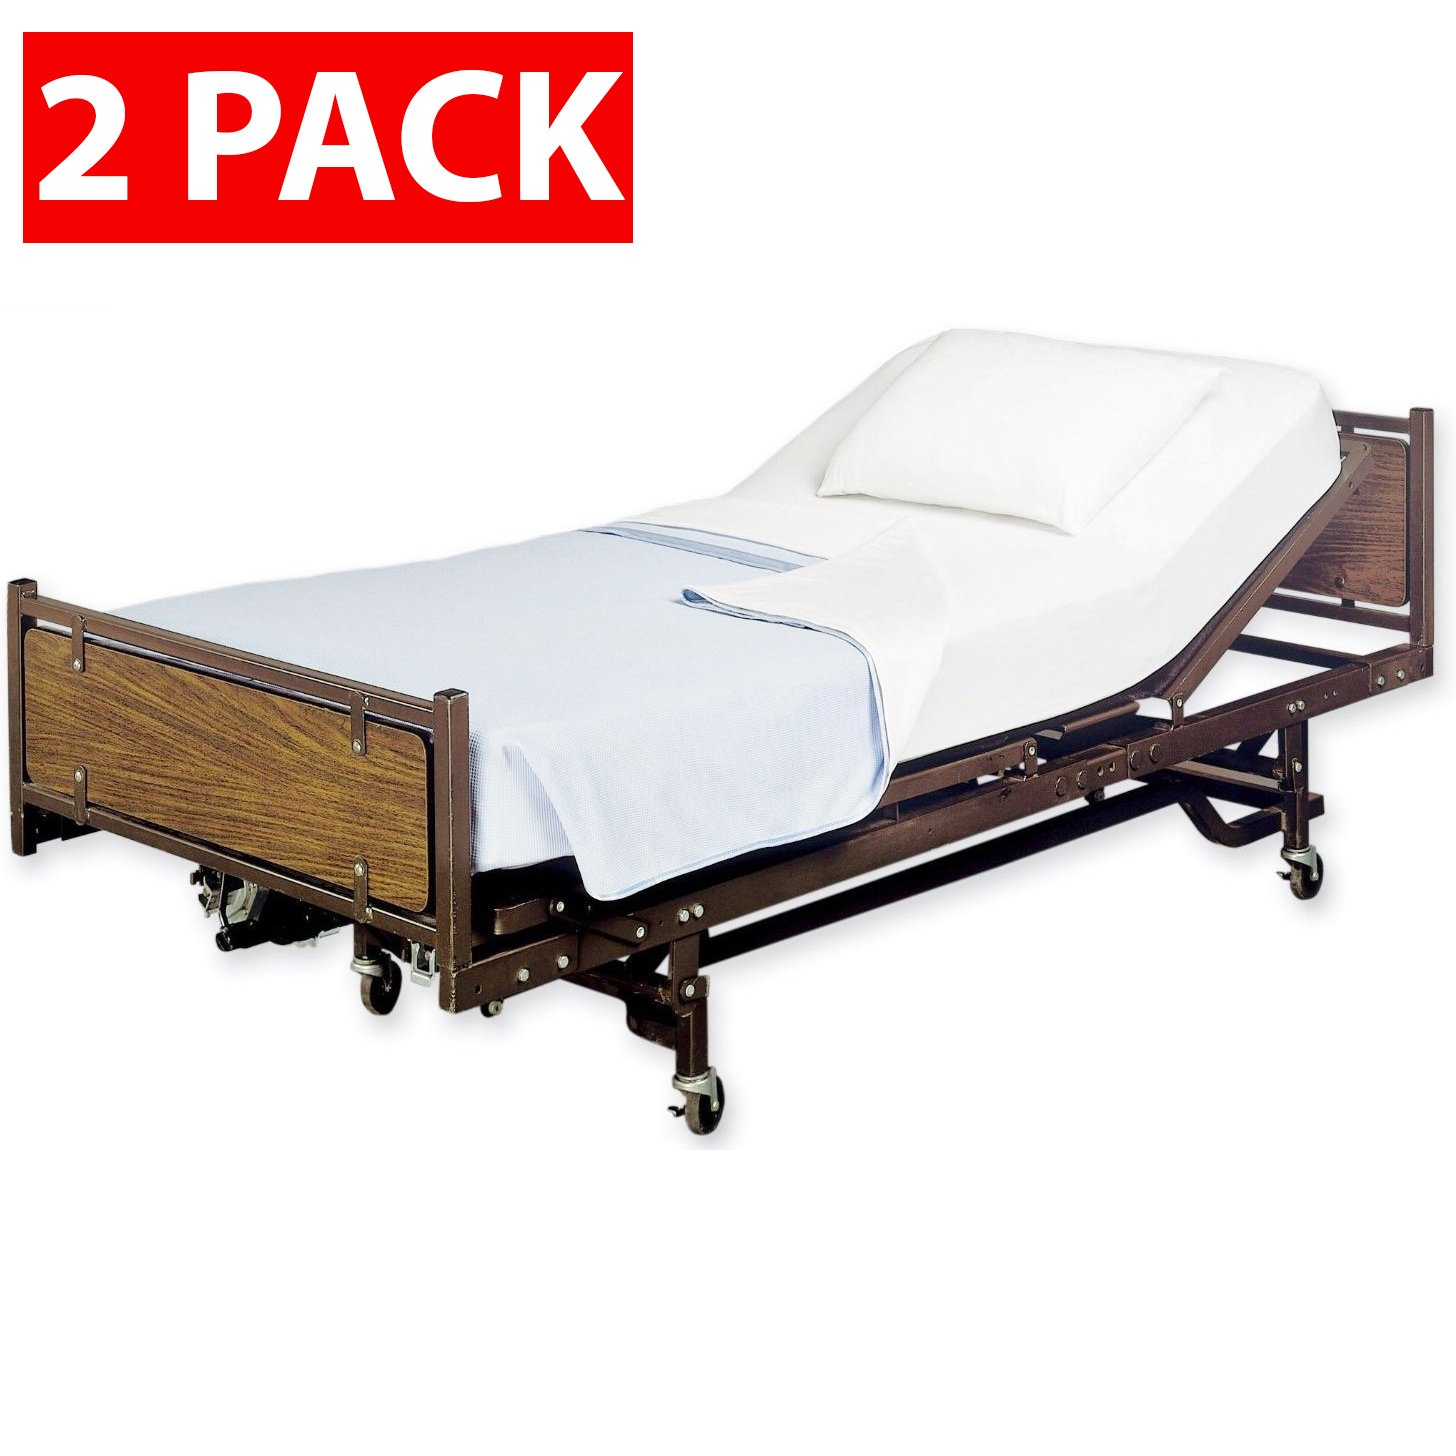 Careoutfit 2 Pack - Fitted Hospital Bed Sheets